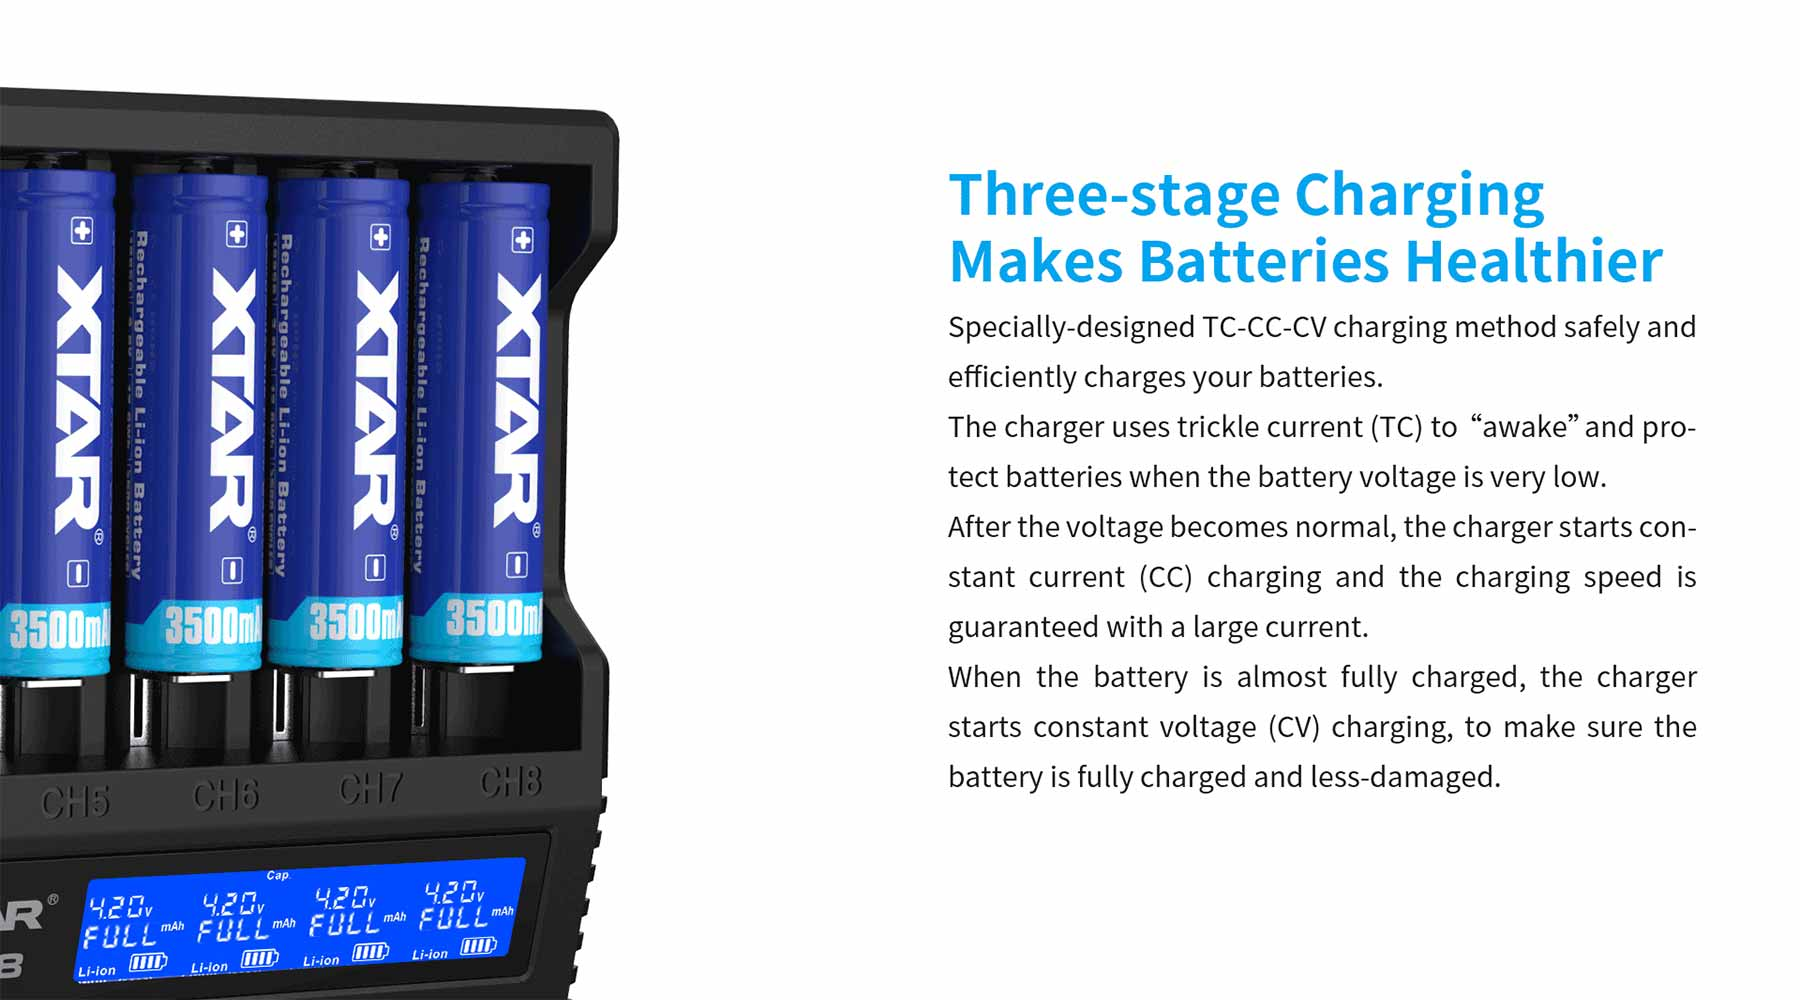 XTAR VC8 can charge 8 batteries at the same time at 0.5 A. Fits eight 21700 batteries fit perfectly side by side.